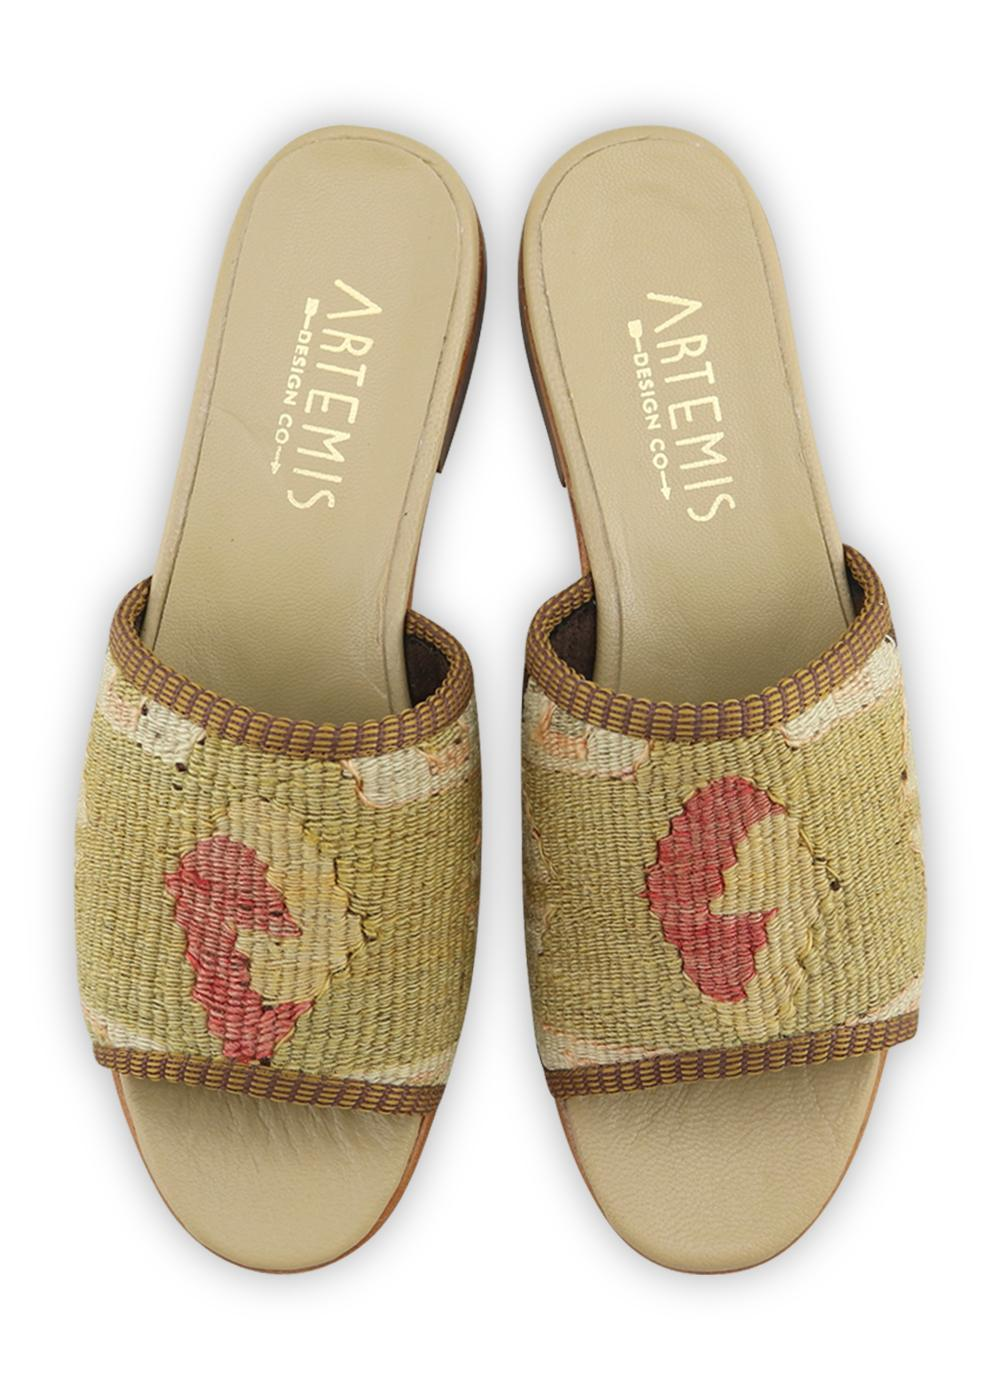 Archived Women's - Women's Kilim Sandals - Size 37